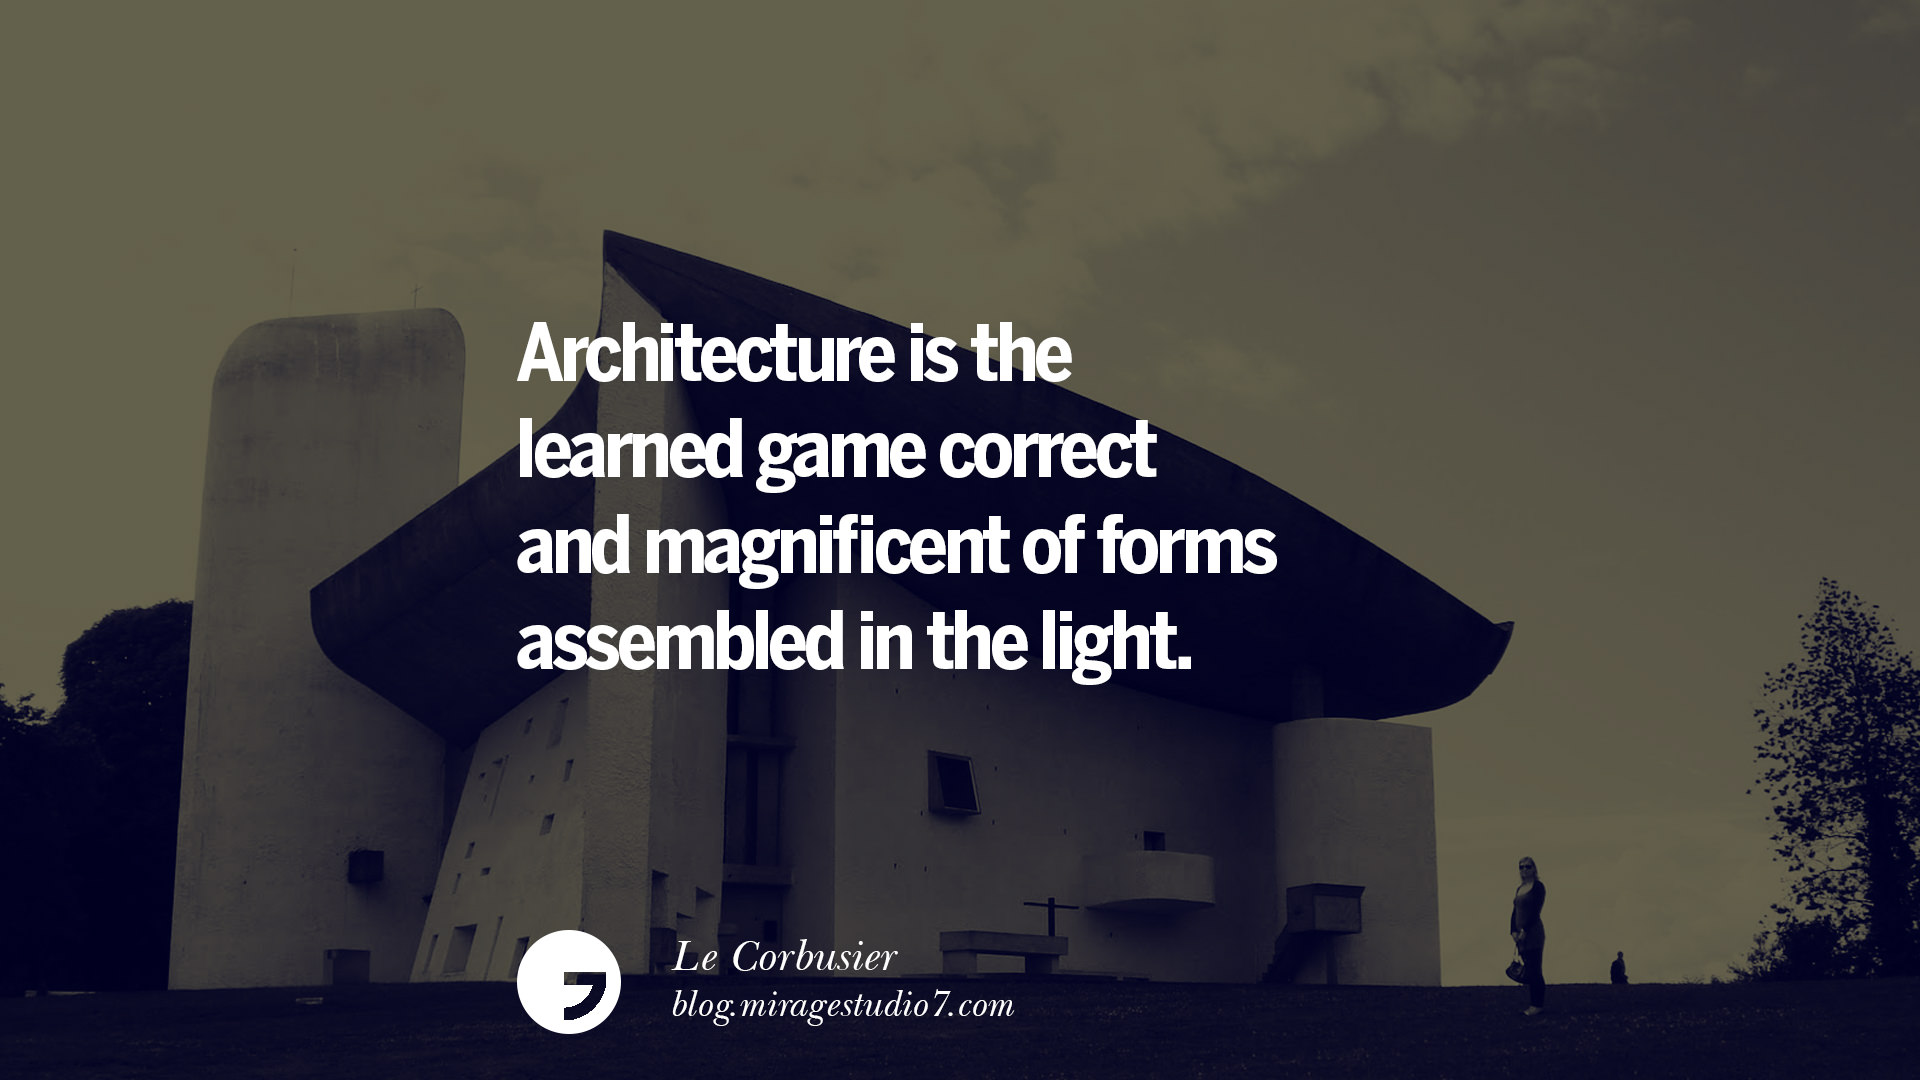 28 Inspirational Architecture Quotes by Famous Architects and Interior  Designers | Architecture Quotes | Pinterest | Architecture quotes, Famous  architects ...